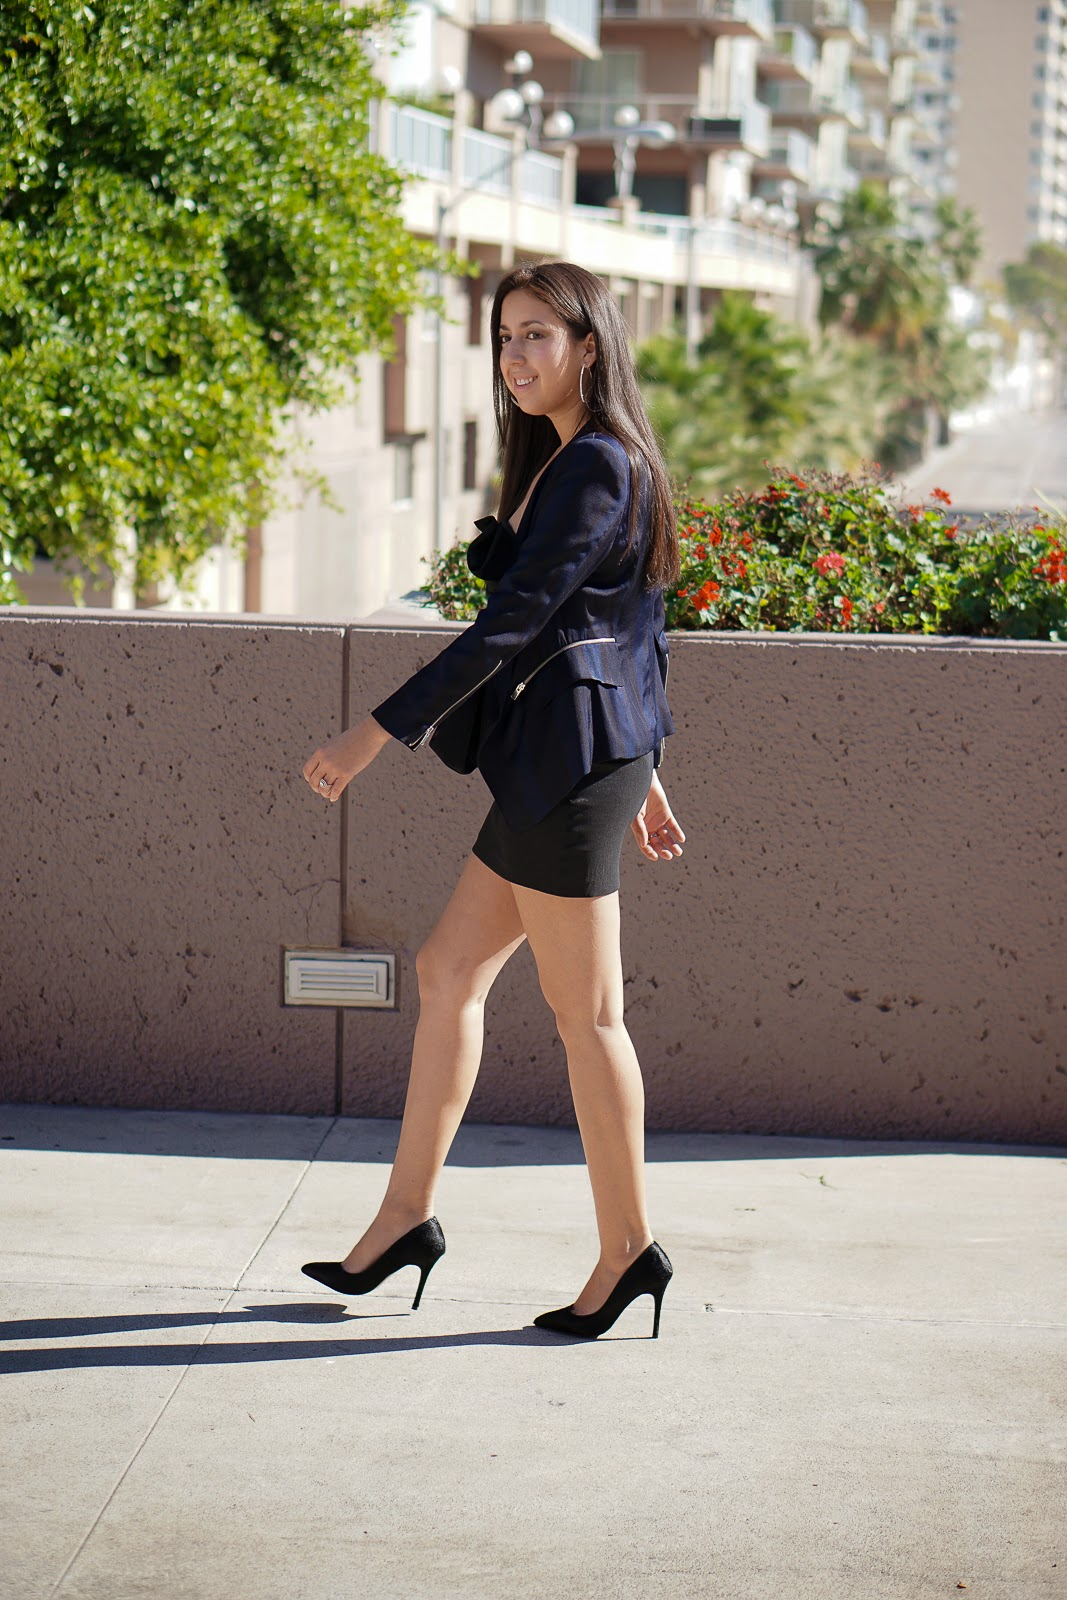 Little Black Dress, Black dress, Shoemint heels, Zara blazer, Blue striped Zara Blazer, Zara, Black heels, Black bow dress, Long Beach CA, Long Beach Performing Art Center, True Honest Fashion, Fashion Blogger, Date Night Outfit